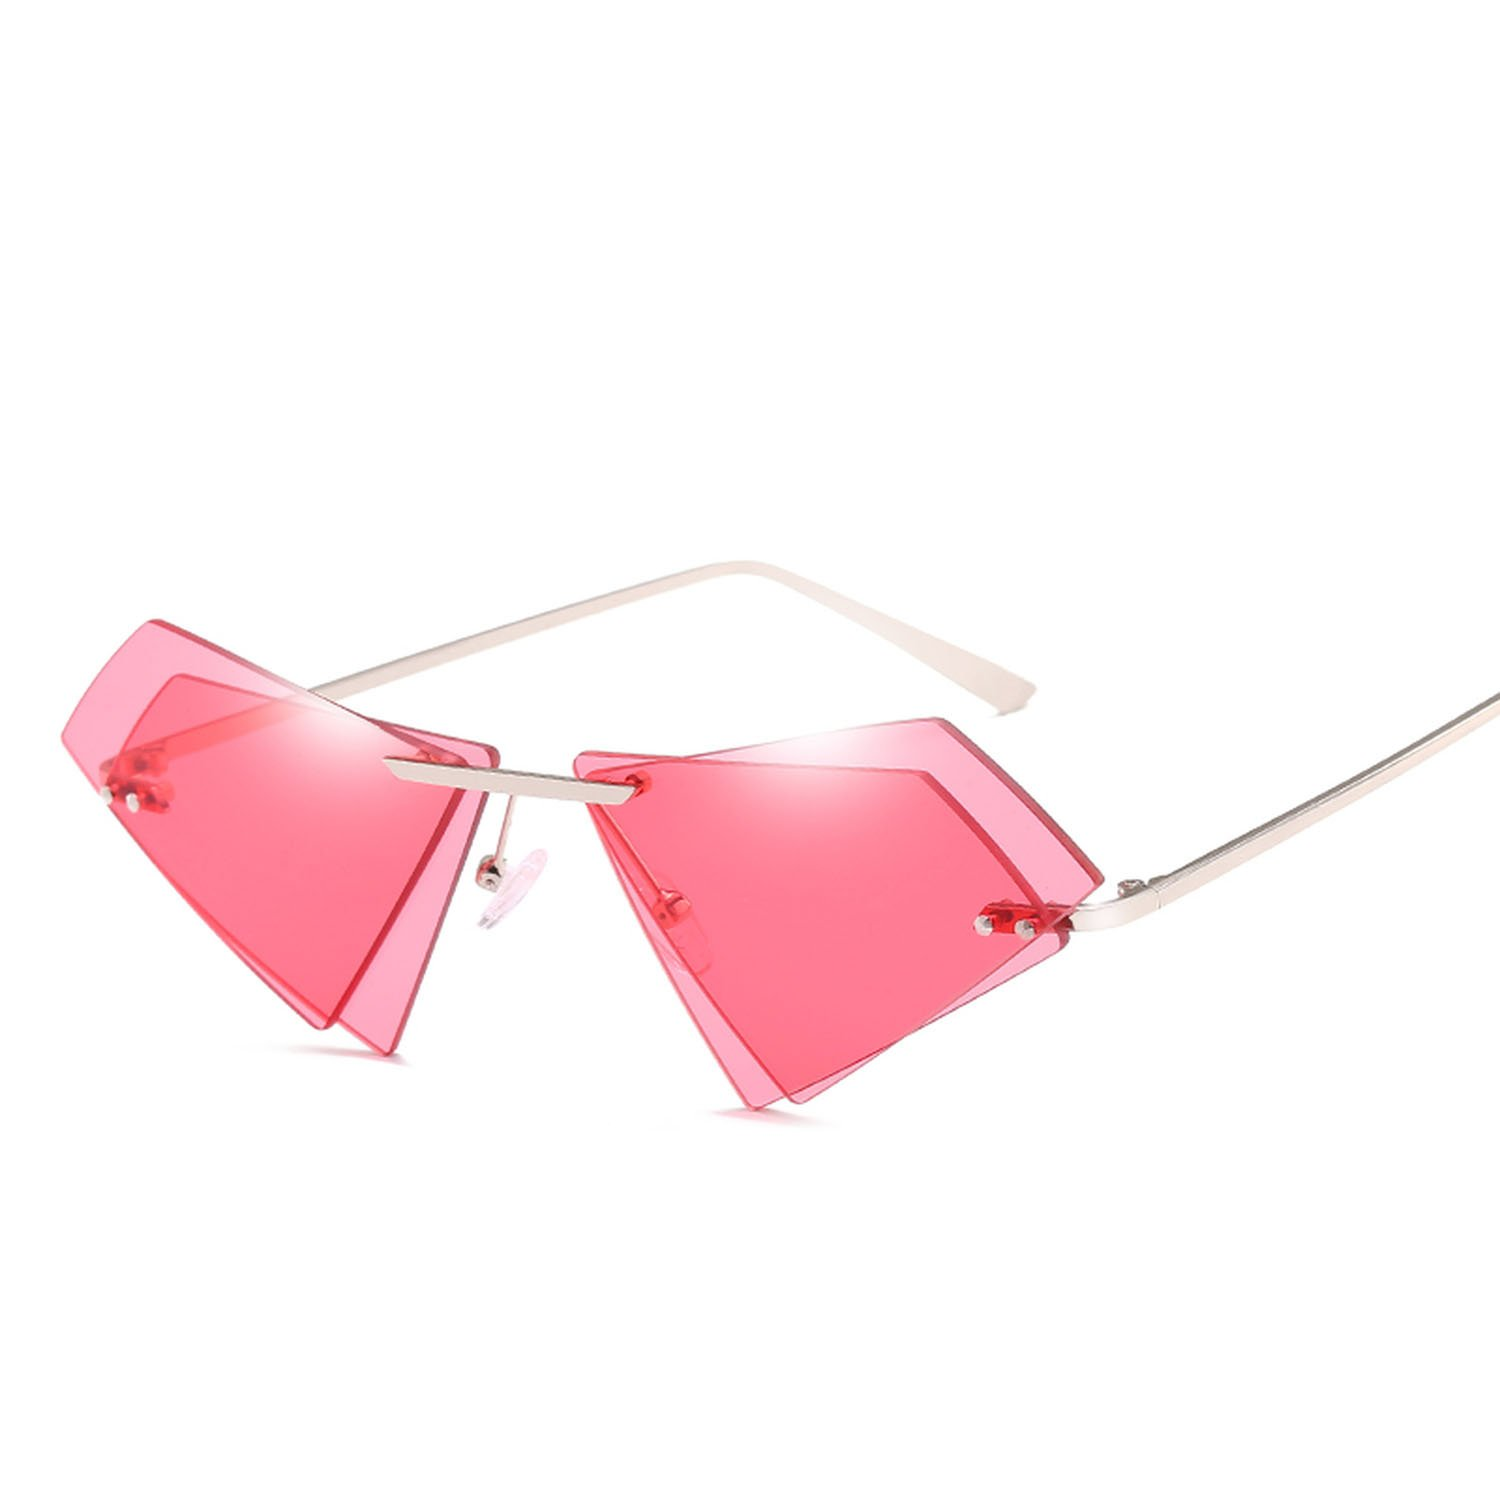 Amazon.com: Gafas de sol Irregular para mujer, doble capa ...